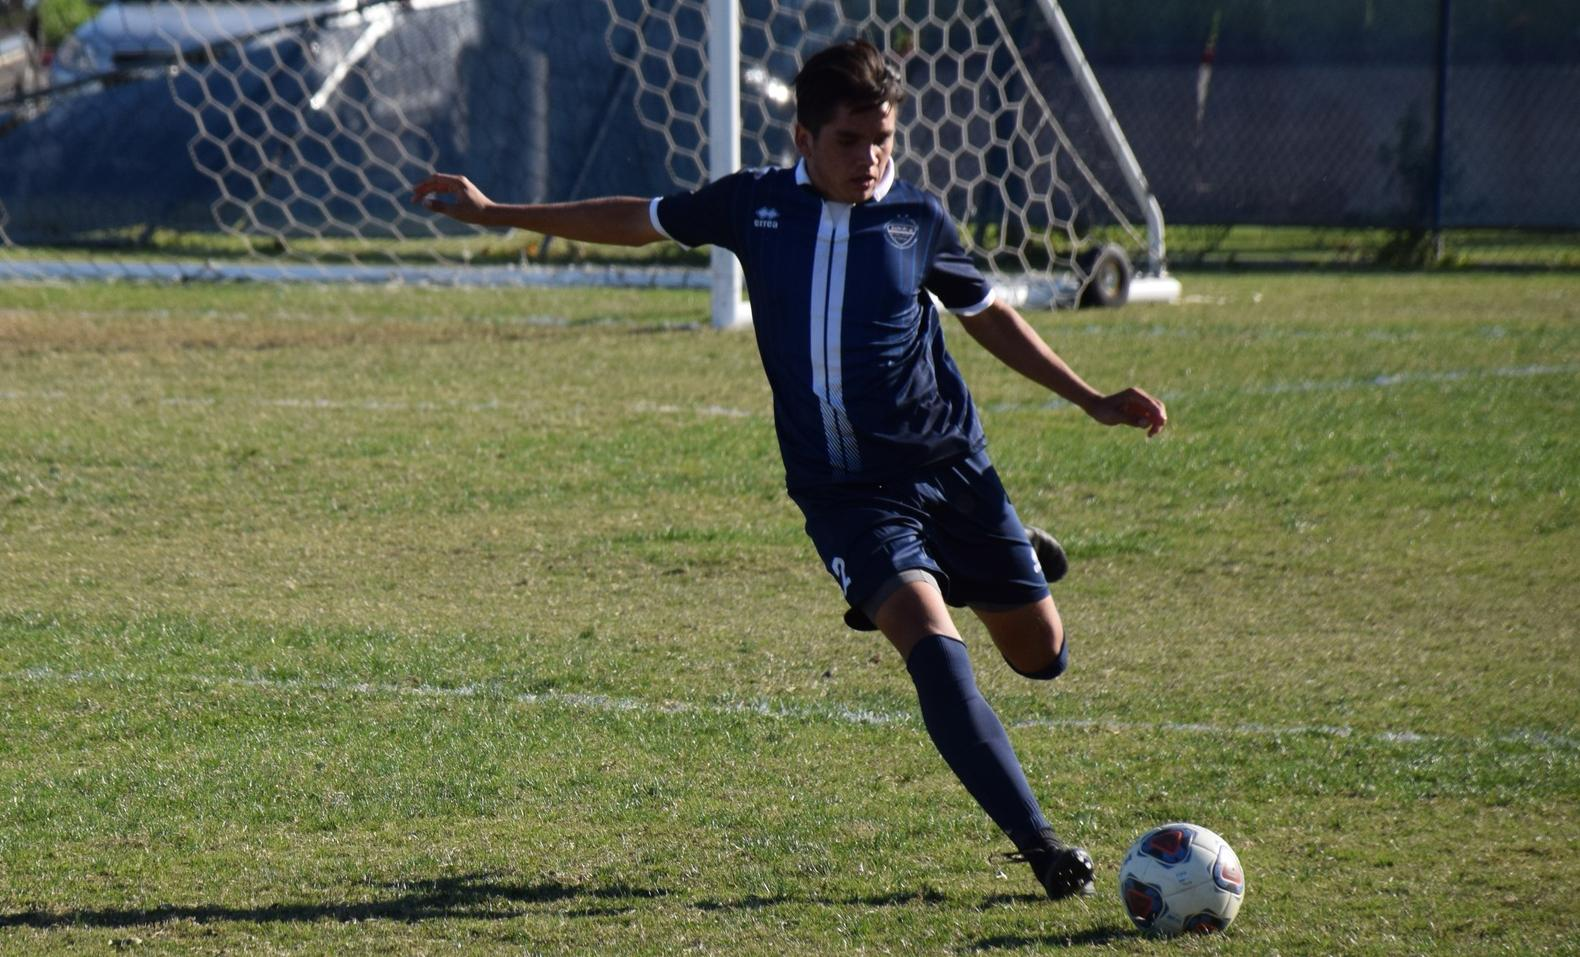 Men's soccer team edged, 2-1, by Golden West at home